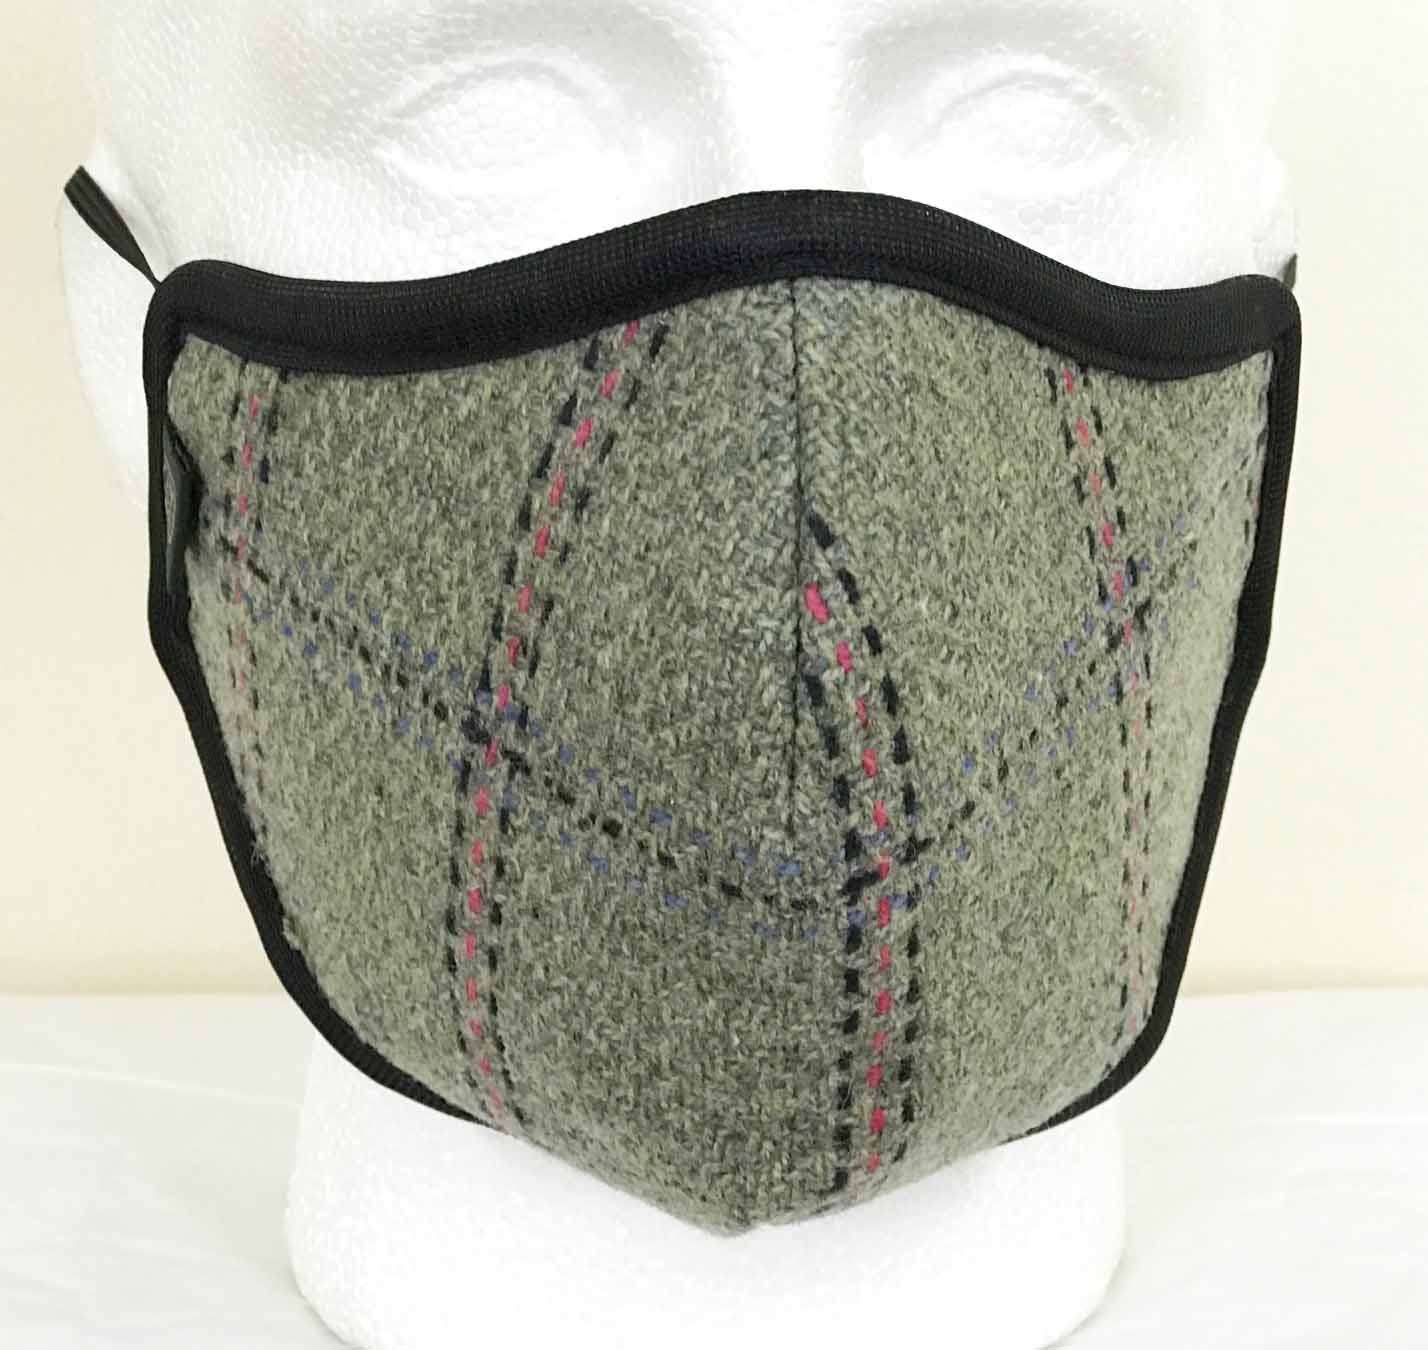 FM04 - Wool Face Mask - 04 GREY - Oxford Blue